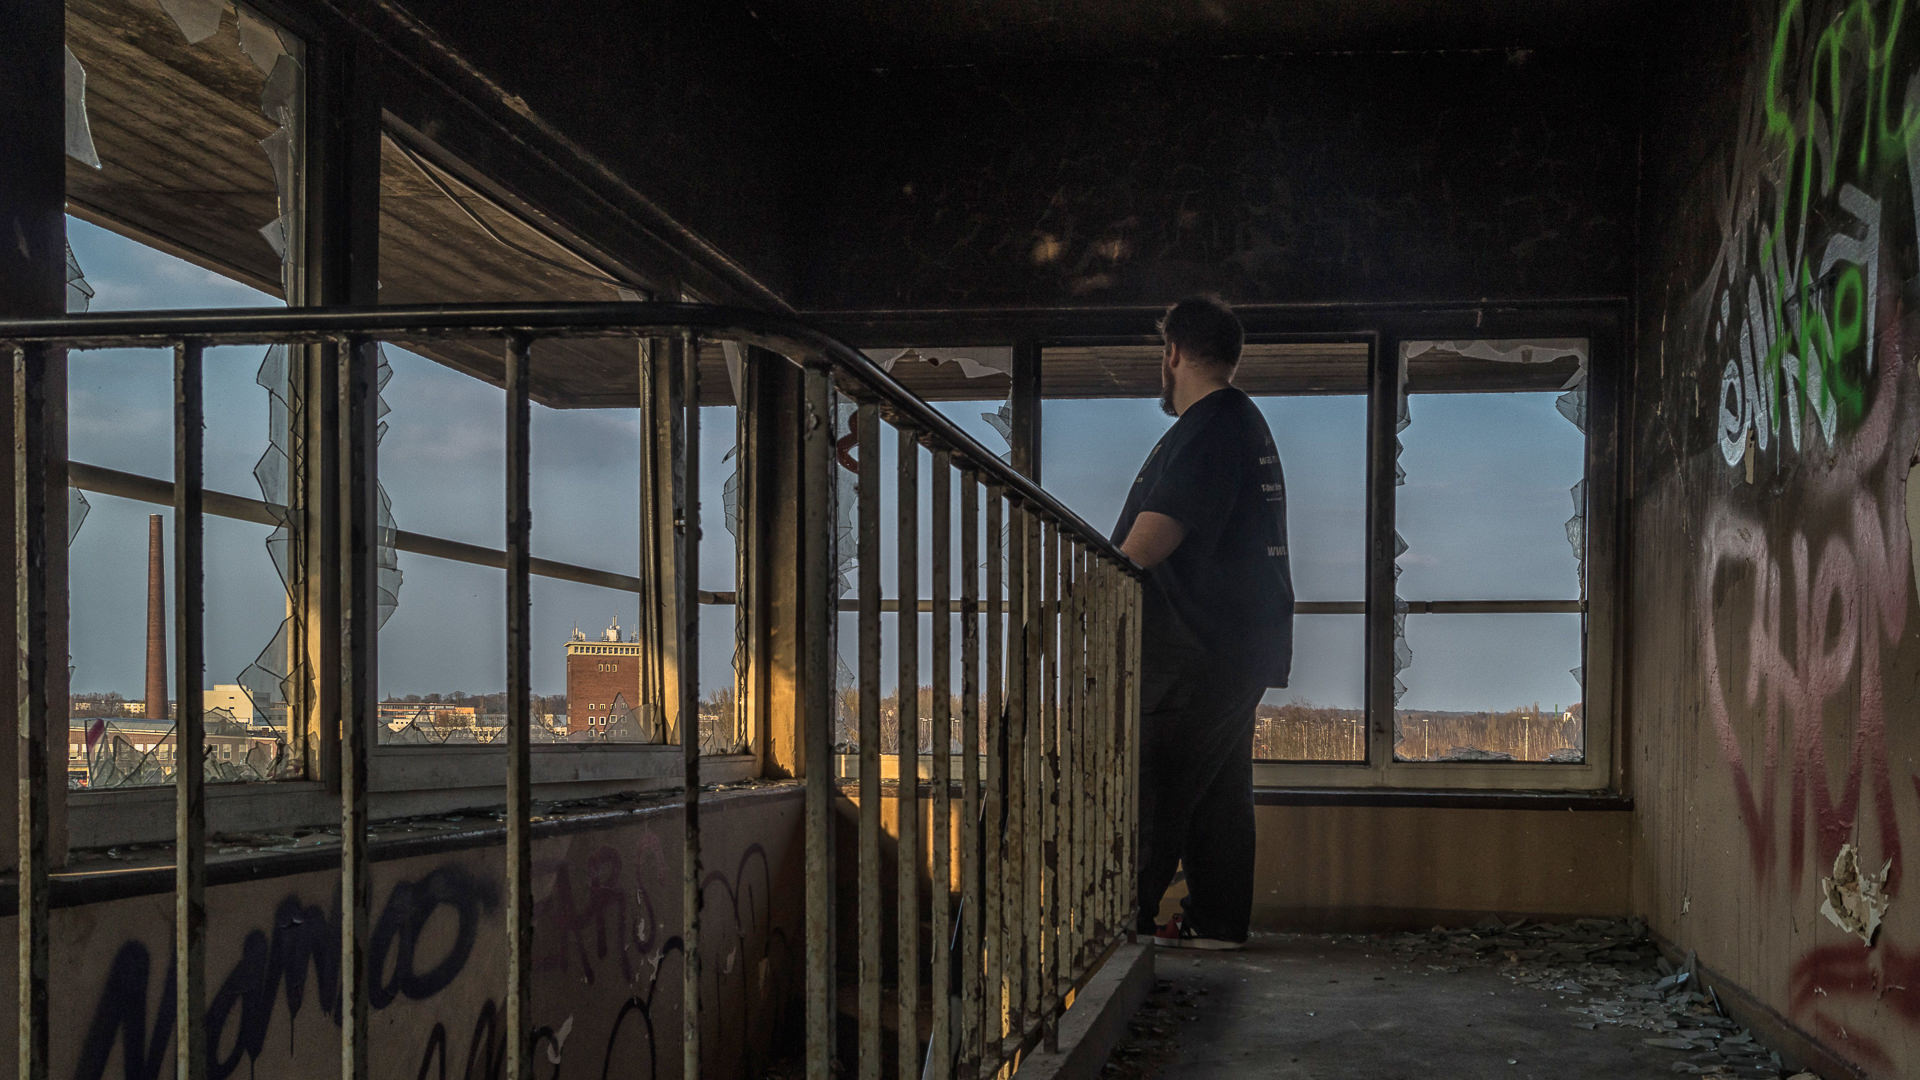 Shooting Lost Place mit Thorsten Borchers 10.04.2015